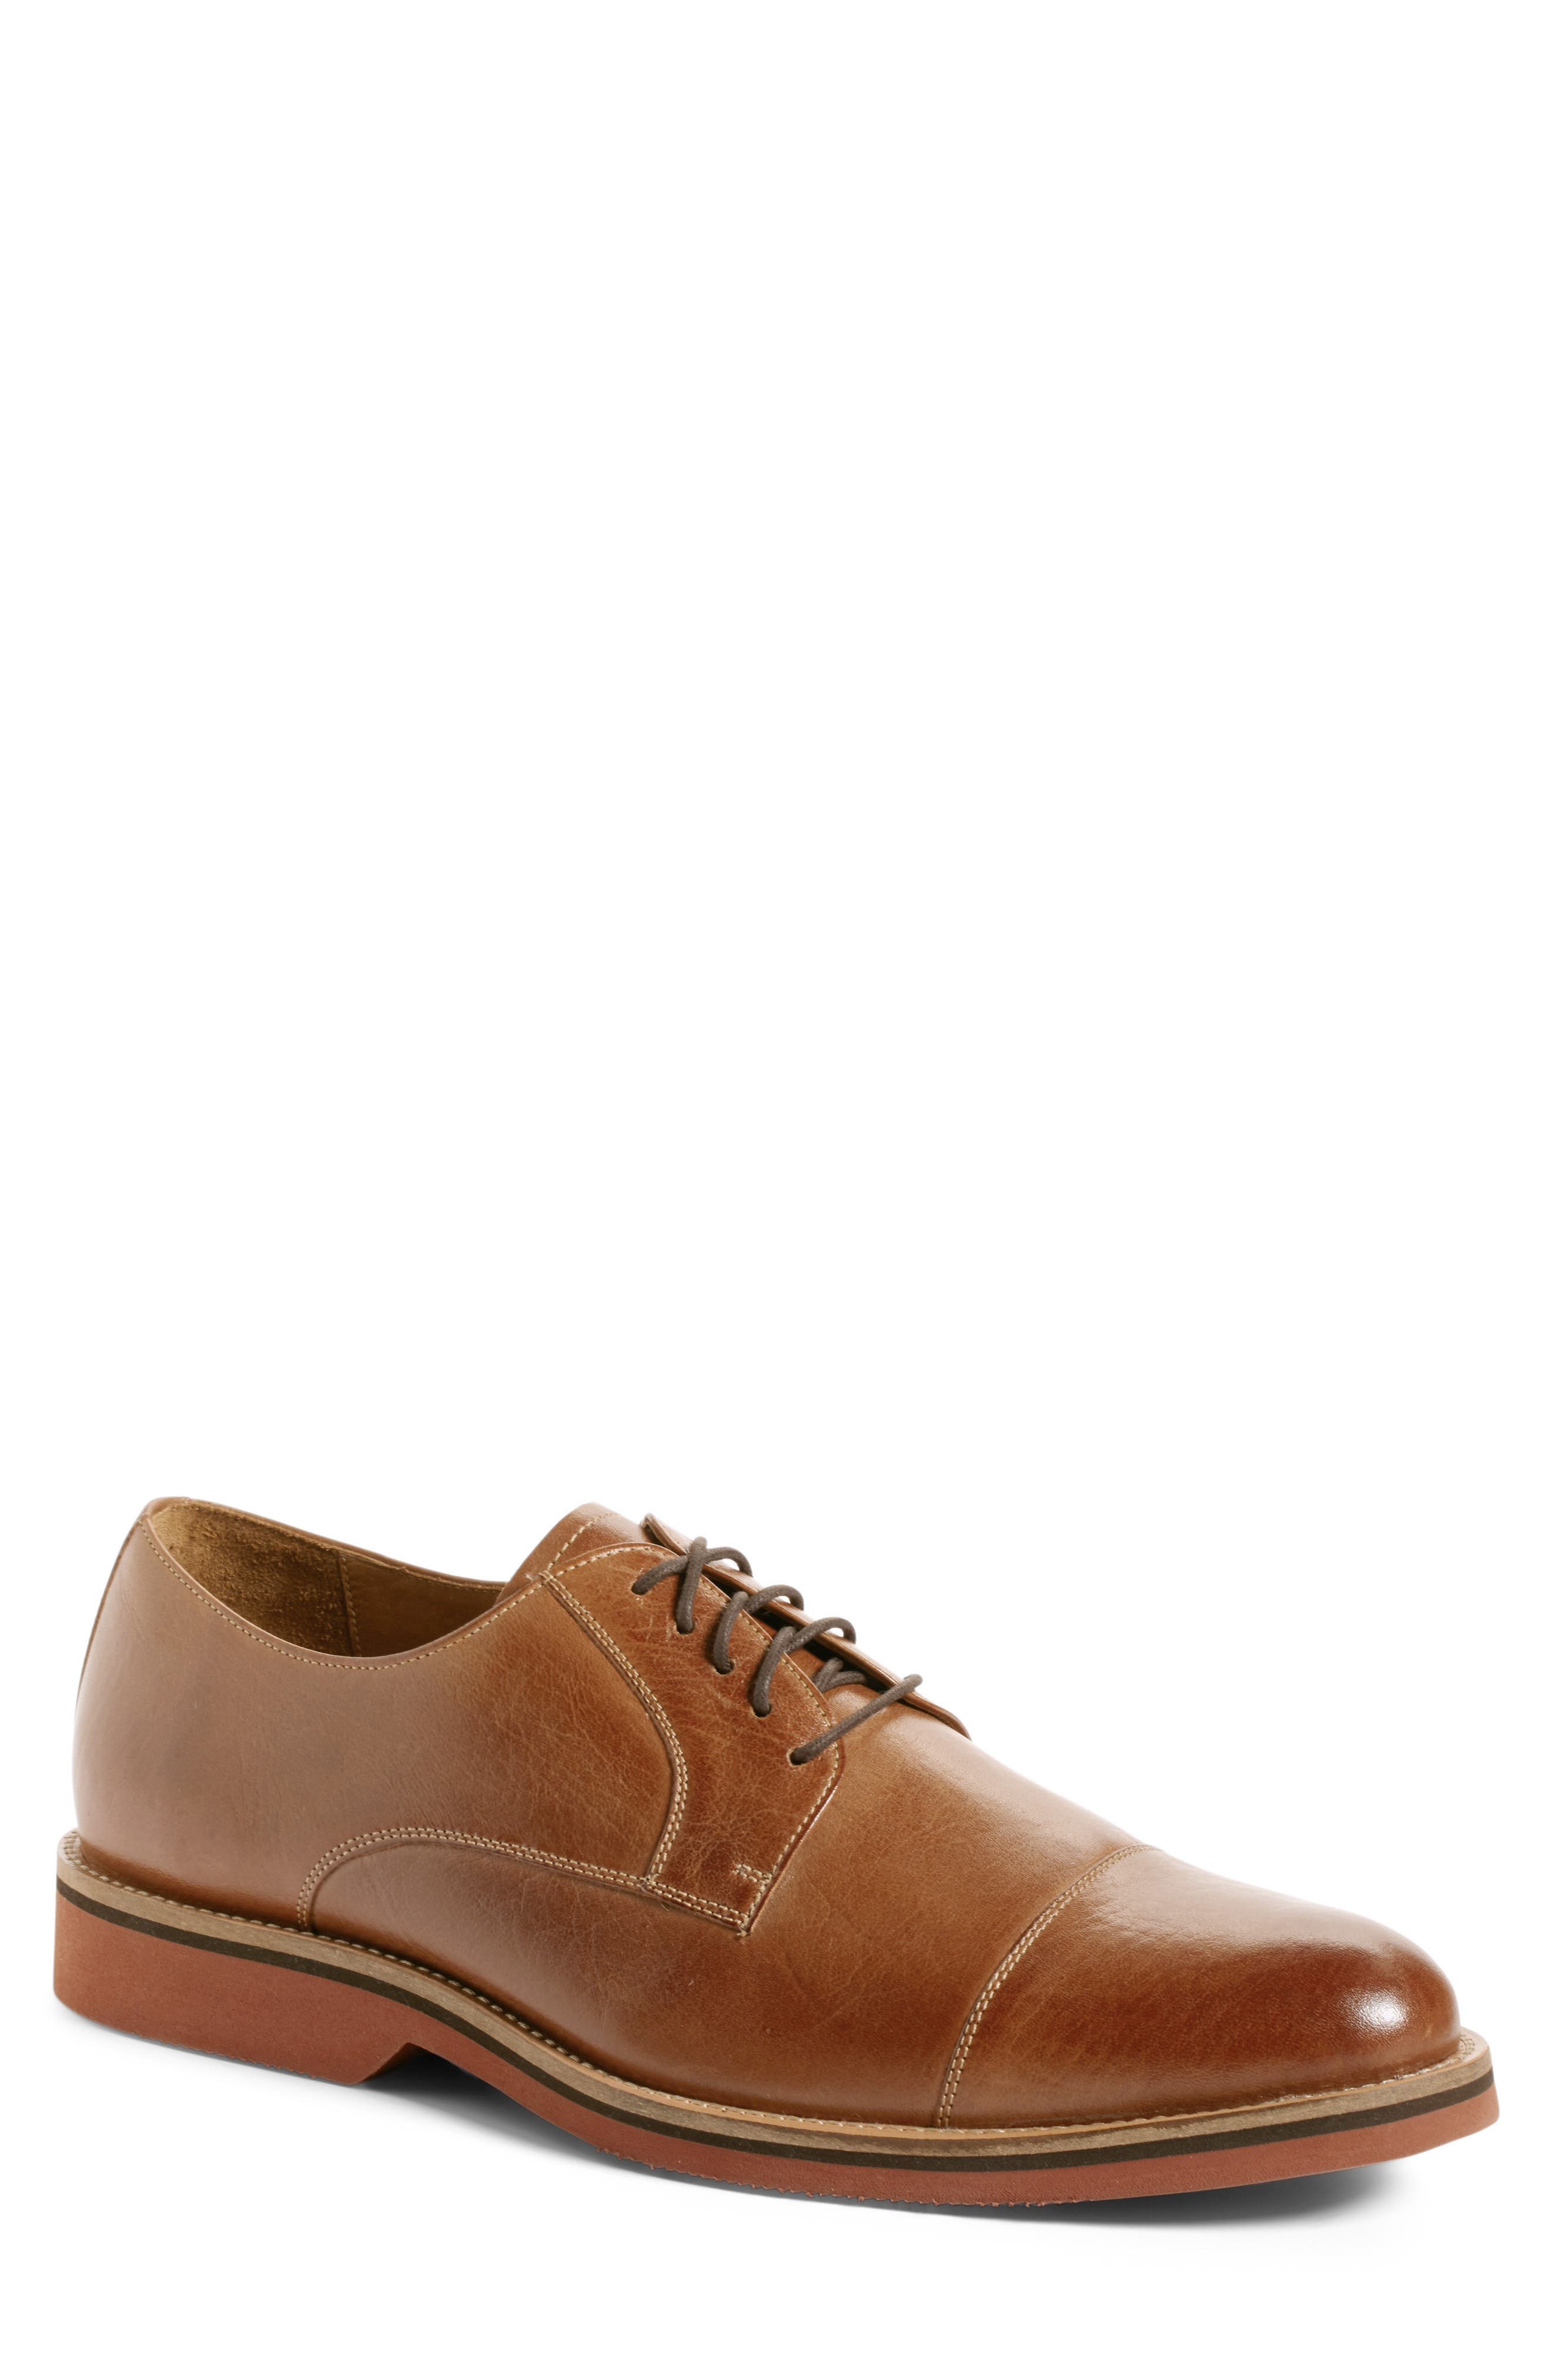 Poulsbo Cap Toe Derby,                         Main,                         color, Tan Leather